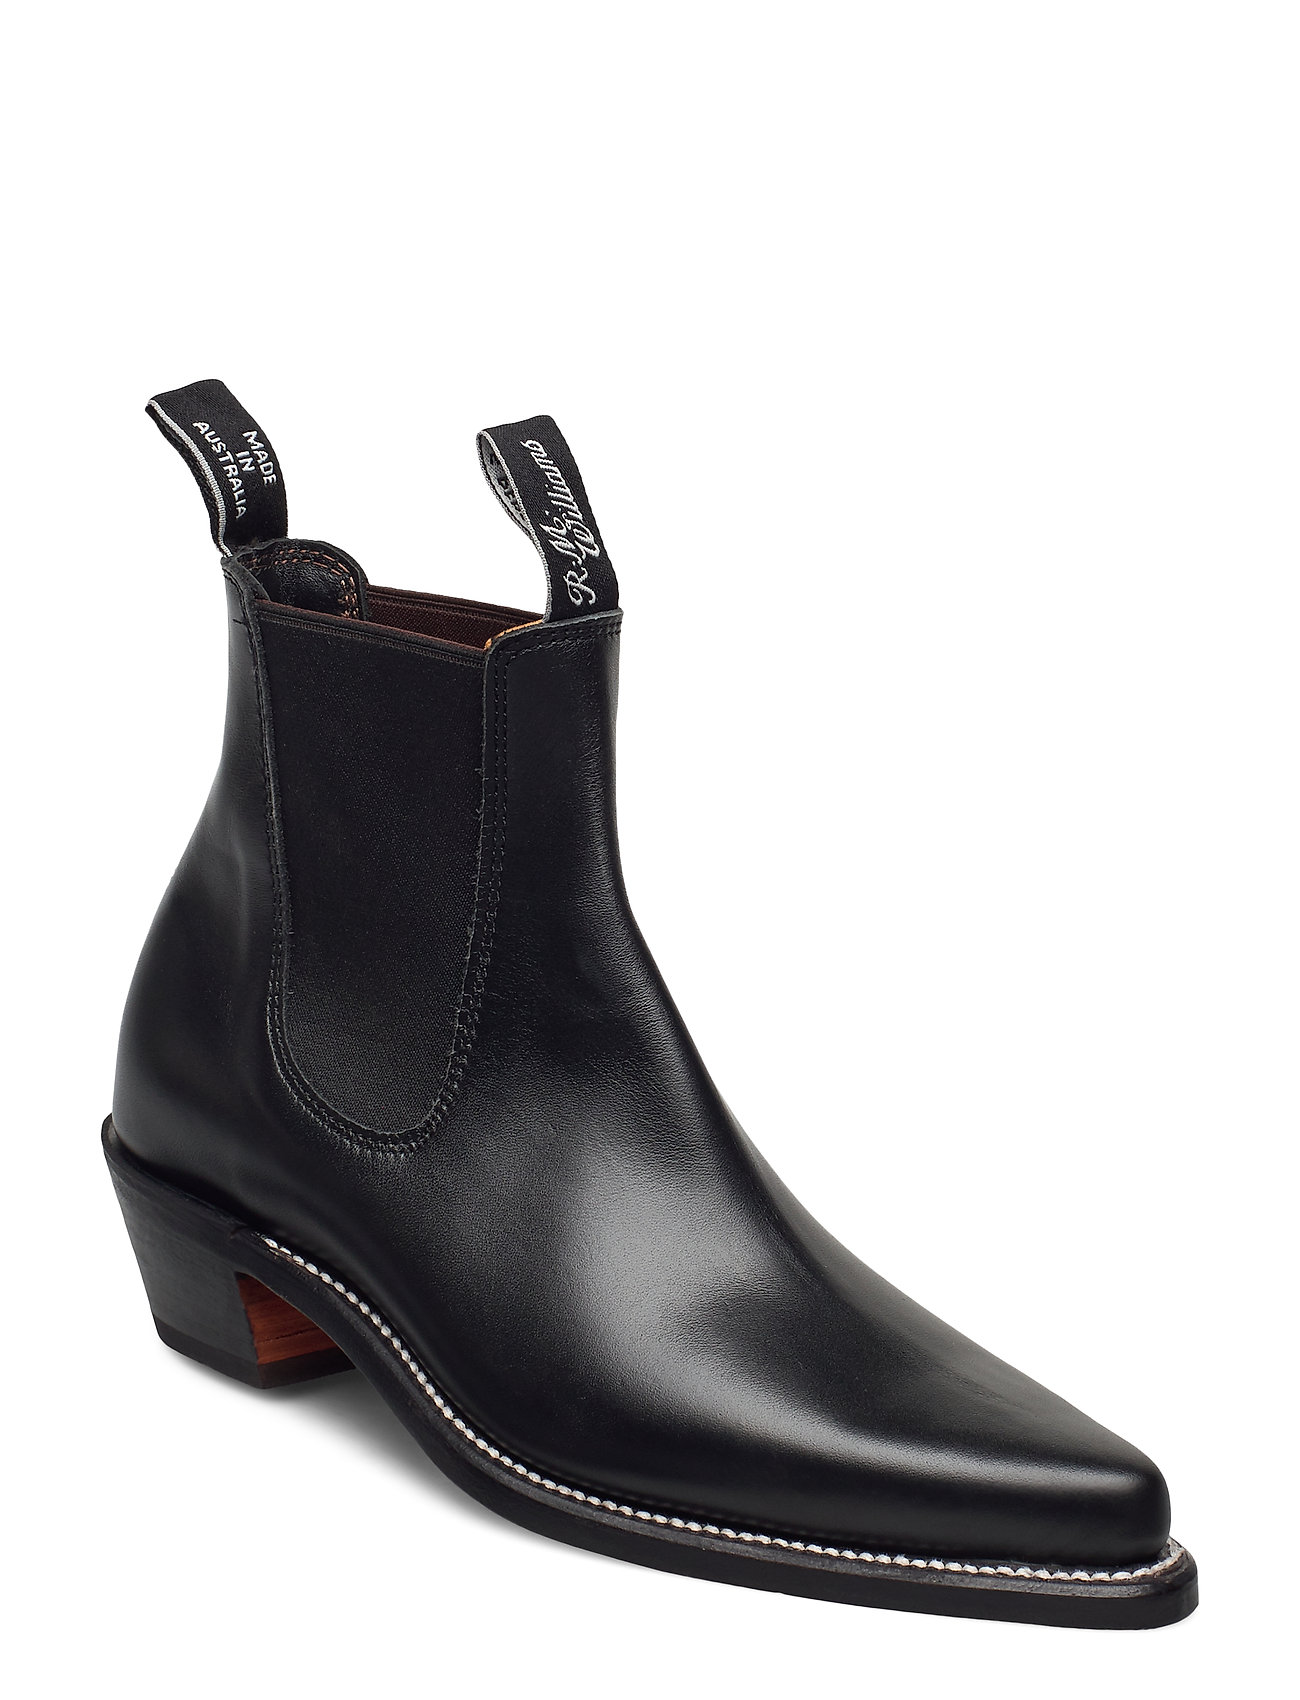 Image of Millicent D Shoes Boots Ankle Boots Ankle Boot - Flat Sort R.M. Williams (3444701709)